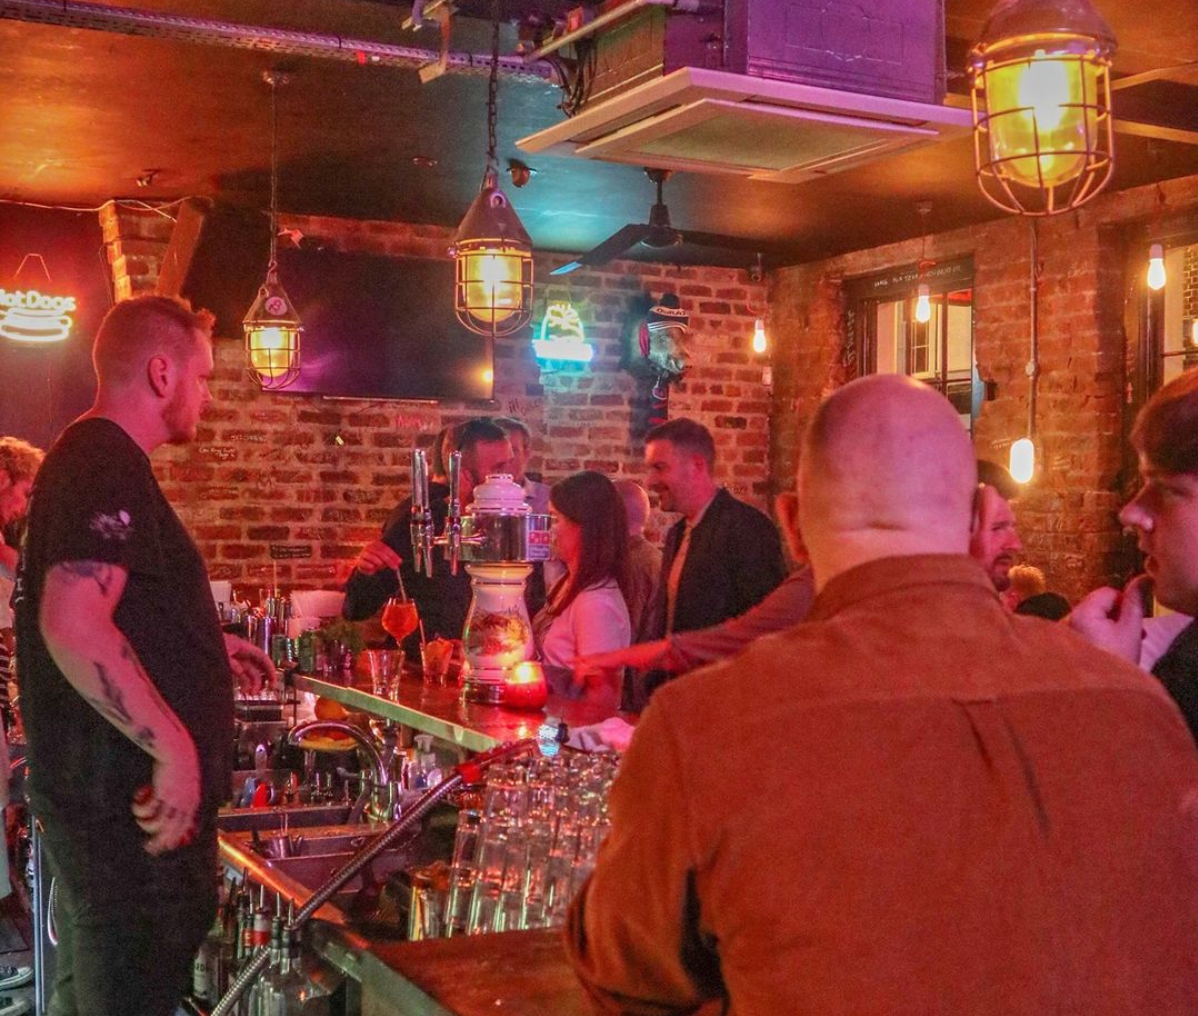 Salt Dog Slims is bringing 'steins, brines and good times' to Manchester, The Manc